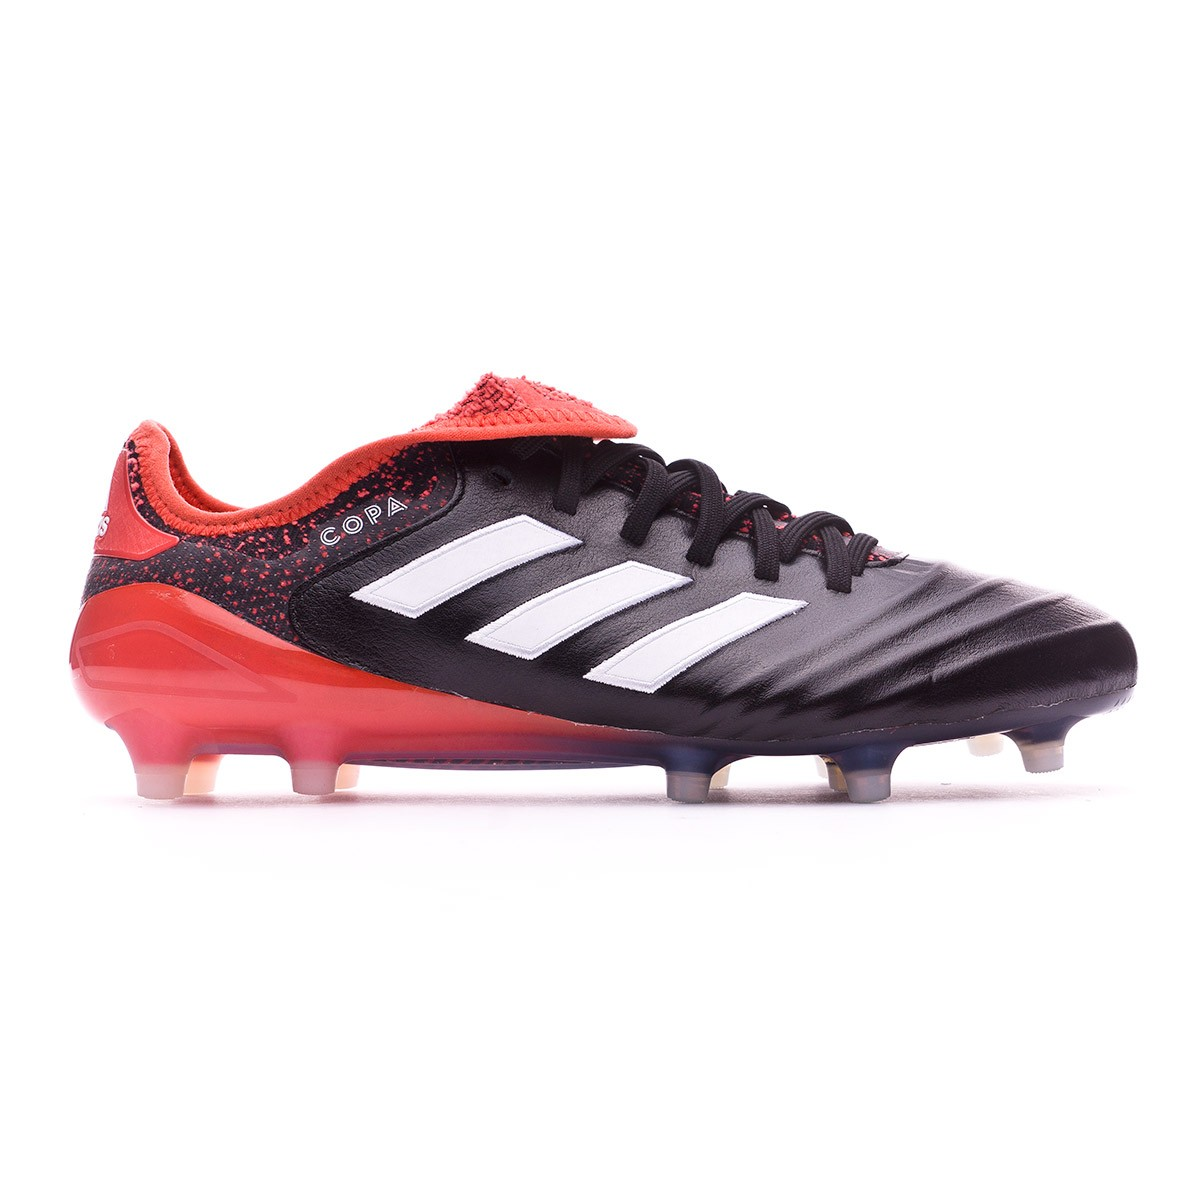 best sneakers 35f61 671cc ... 18.1 FG Core black-White-Real coral. CATEGORY. Football boots · adidas  football boots